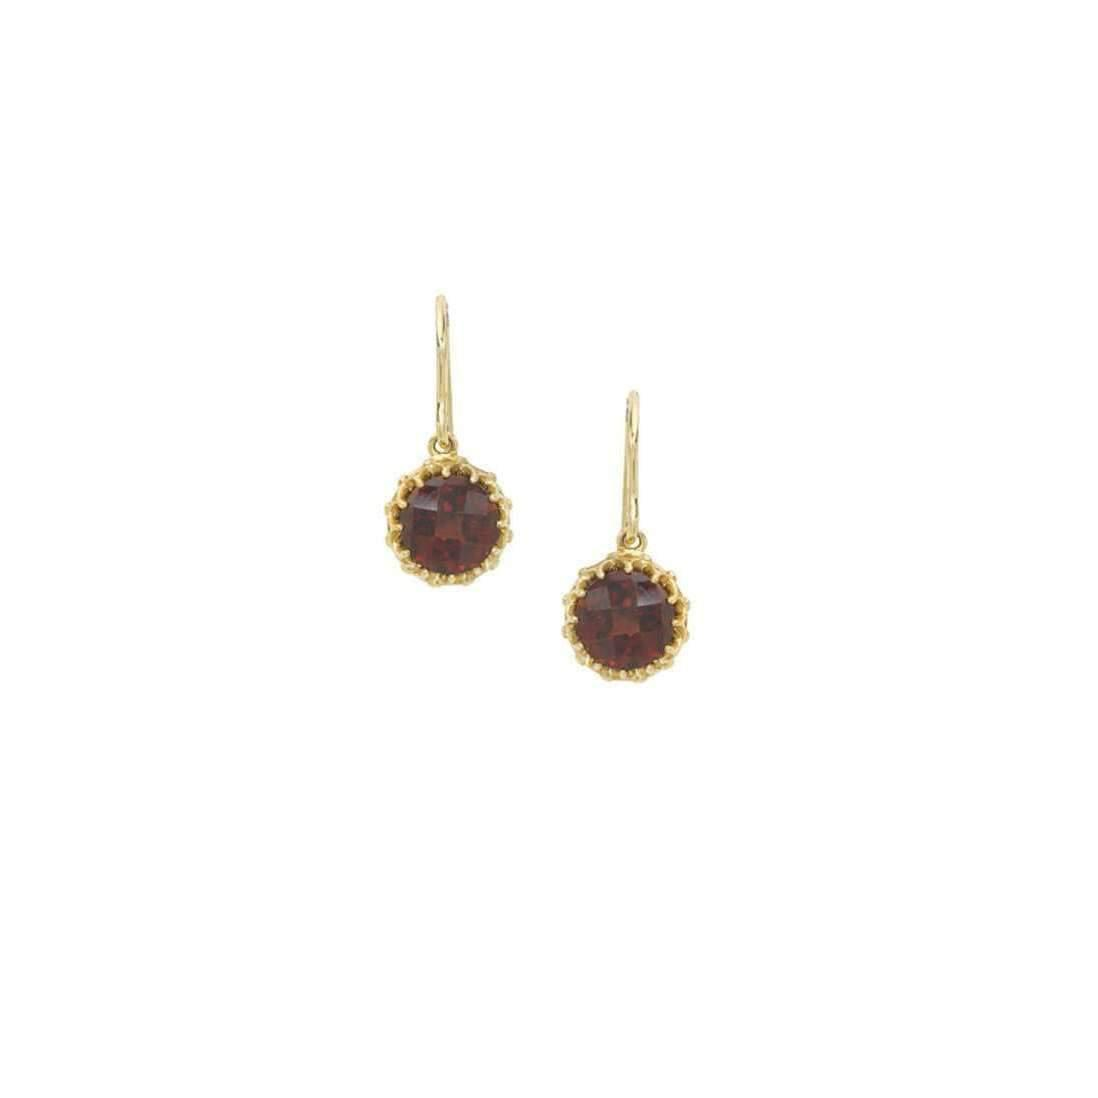 London Road Jewellery Bloomsbury Yellow Gold Garnet Coronation Drop Earrings SNGIRCnj